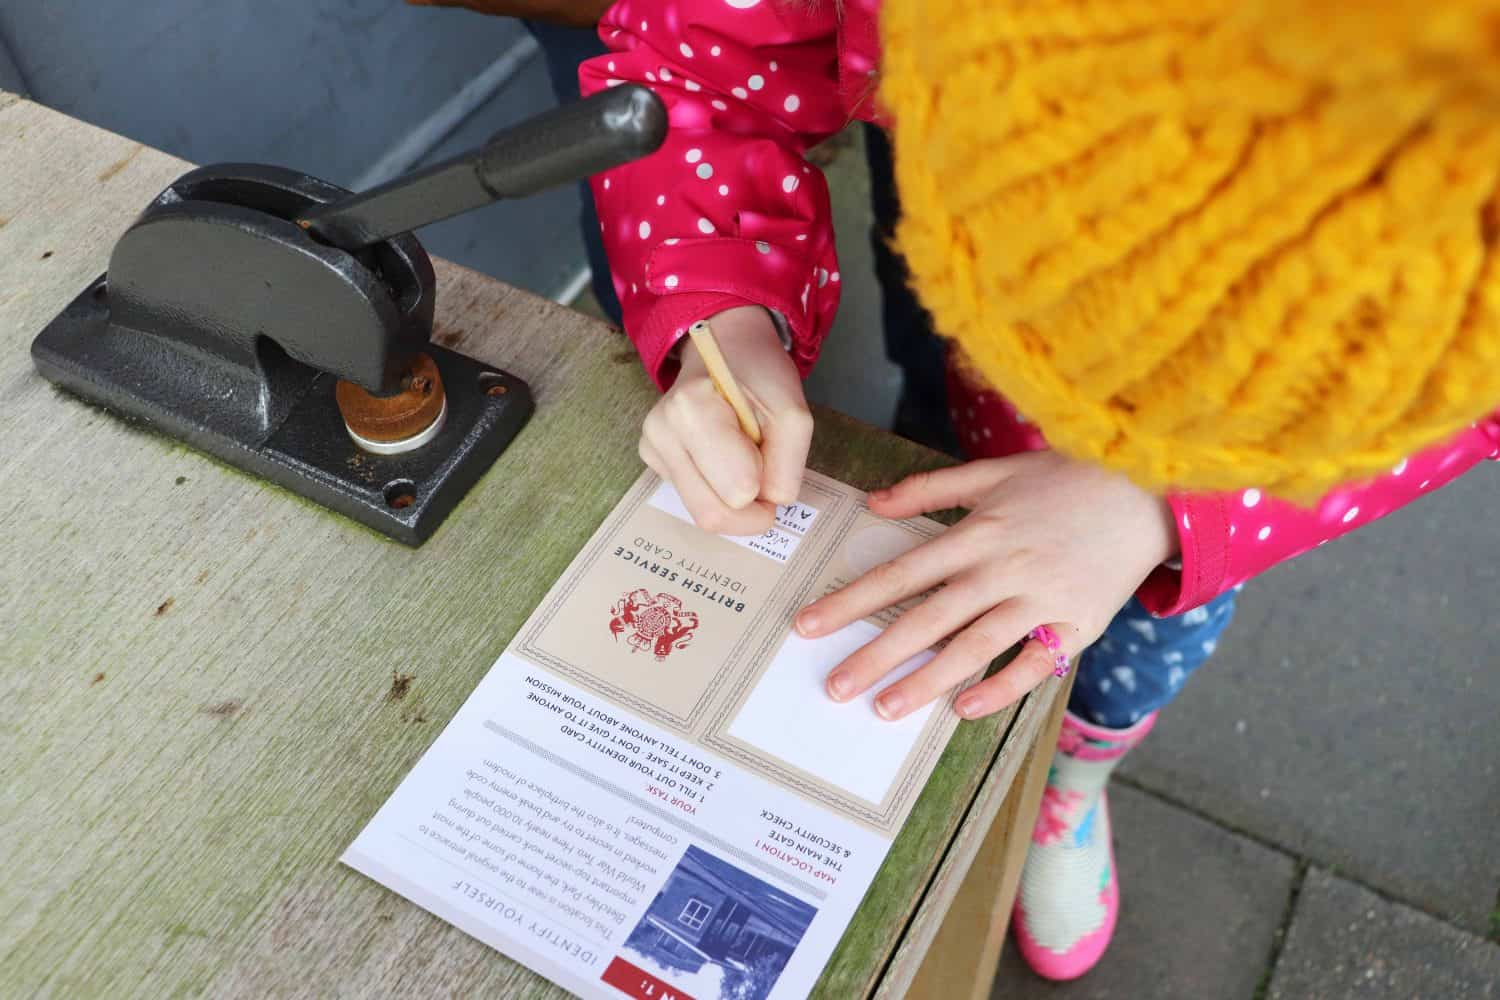 Completing the Bletchley Park activity pack